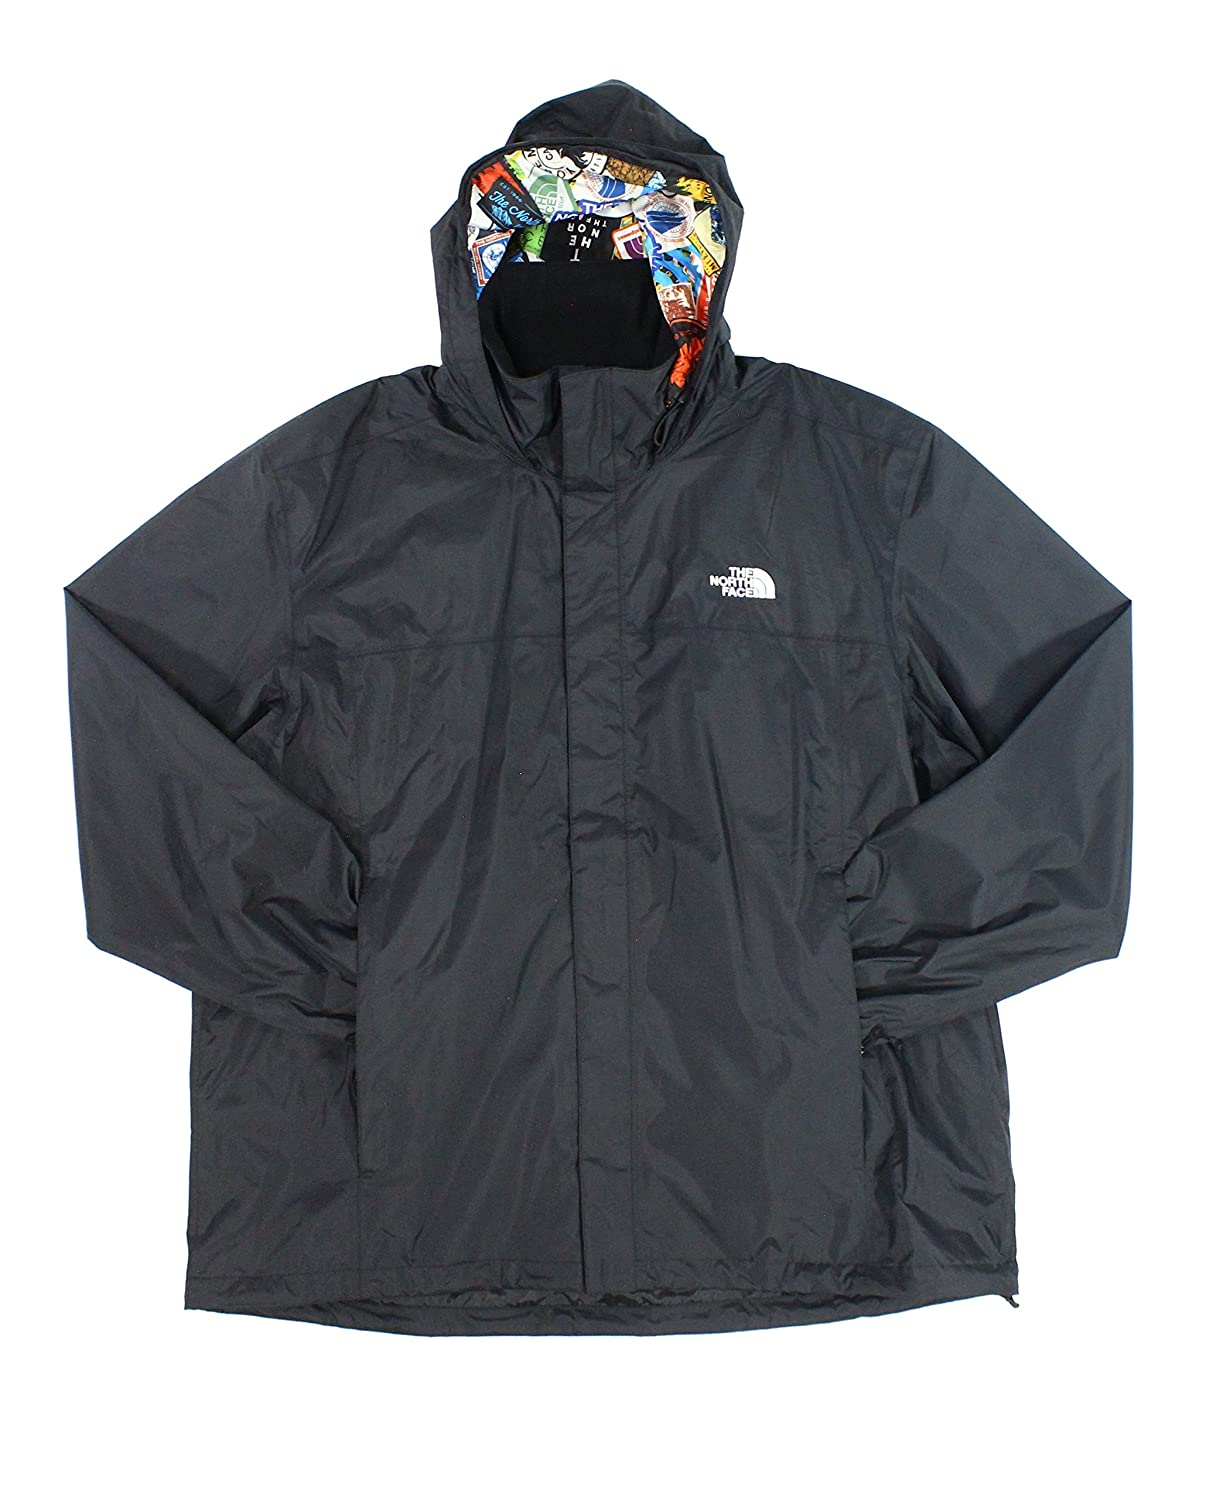 The North Face Resolve 2 メンズジャケット B01HQSXOS8 X-Large|Tnf Black/Multi Sticker Bomb Print Tnf Black/Multi Sticker Bomb Print X-Large